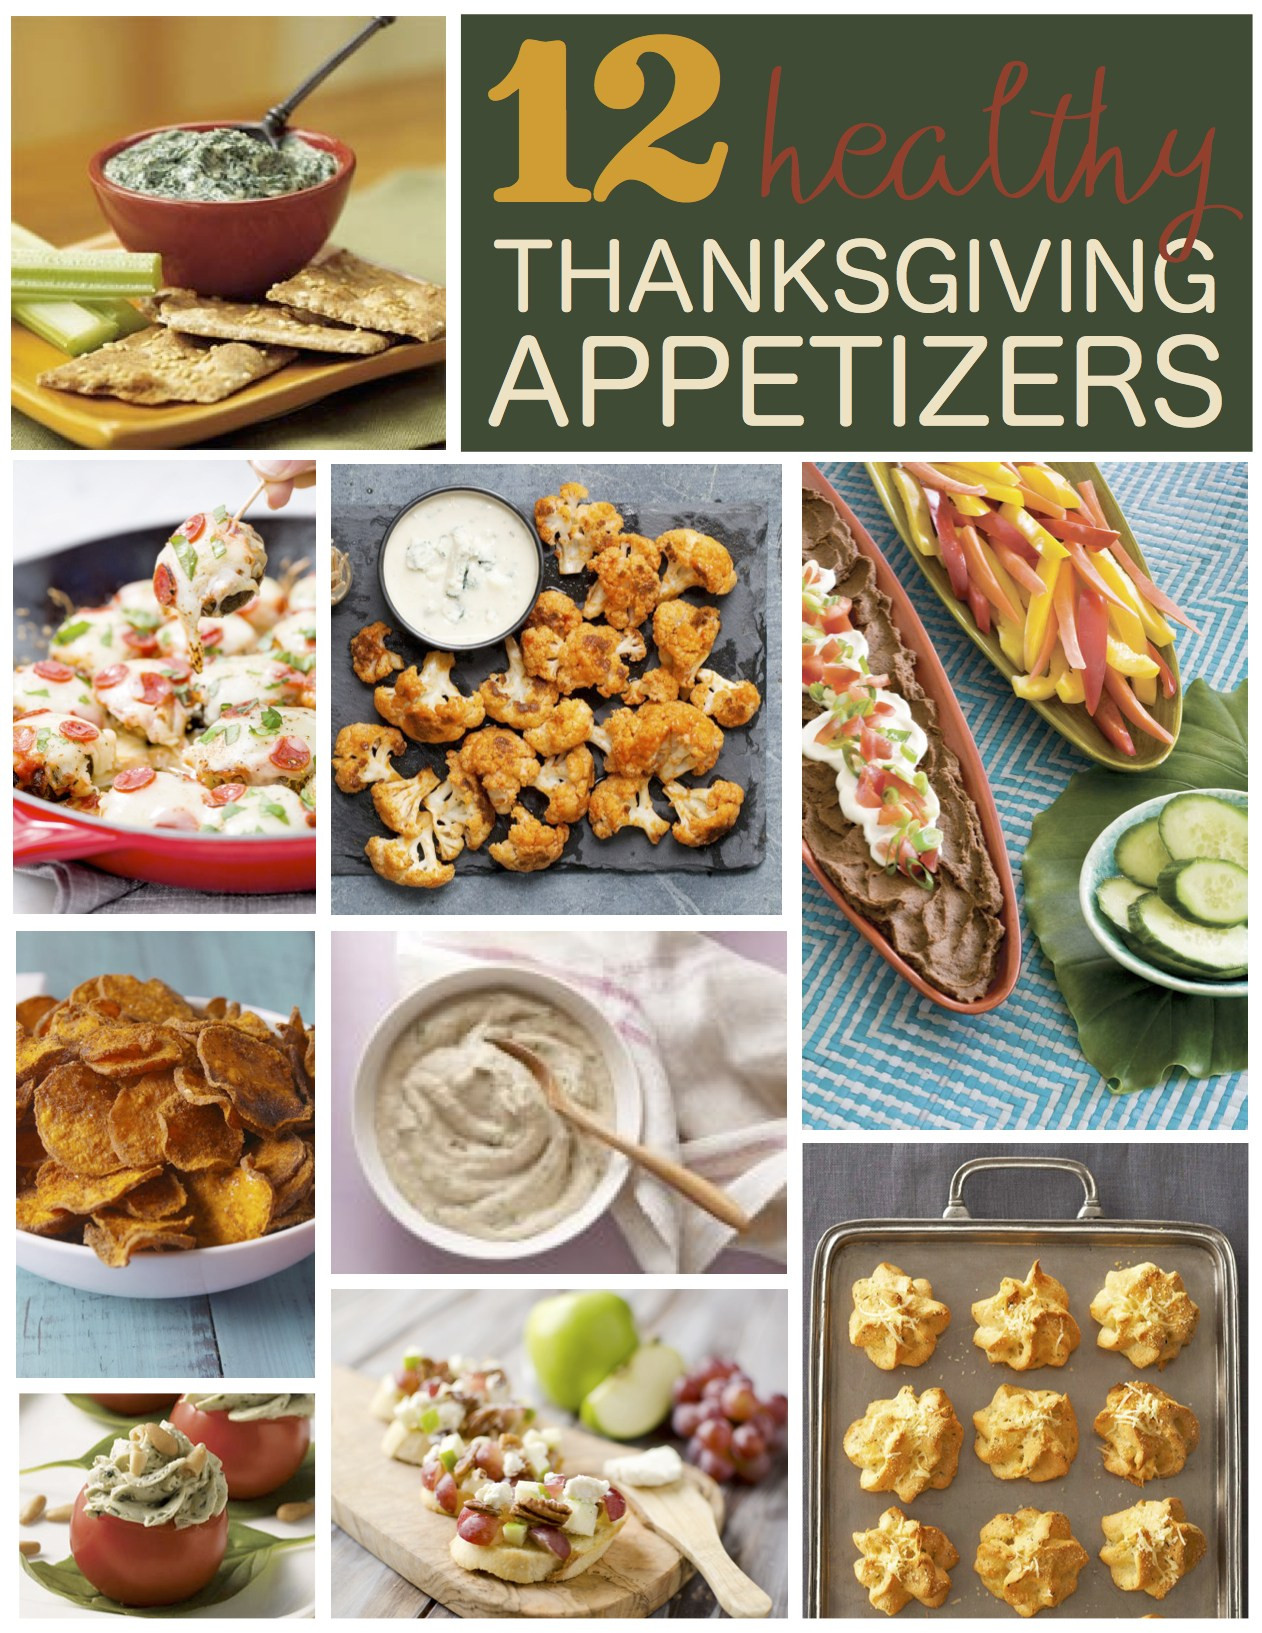 Healthy Thanksgiving Appetizer Recipes  12 Healthy Thanksgiving Appetizer Recipes Six Clever Sisters